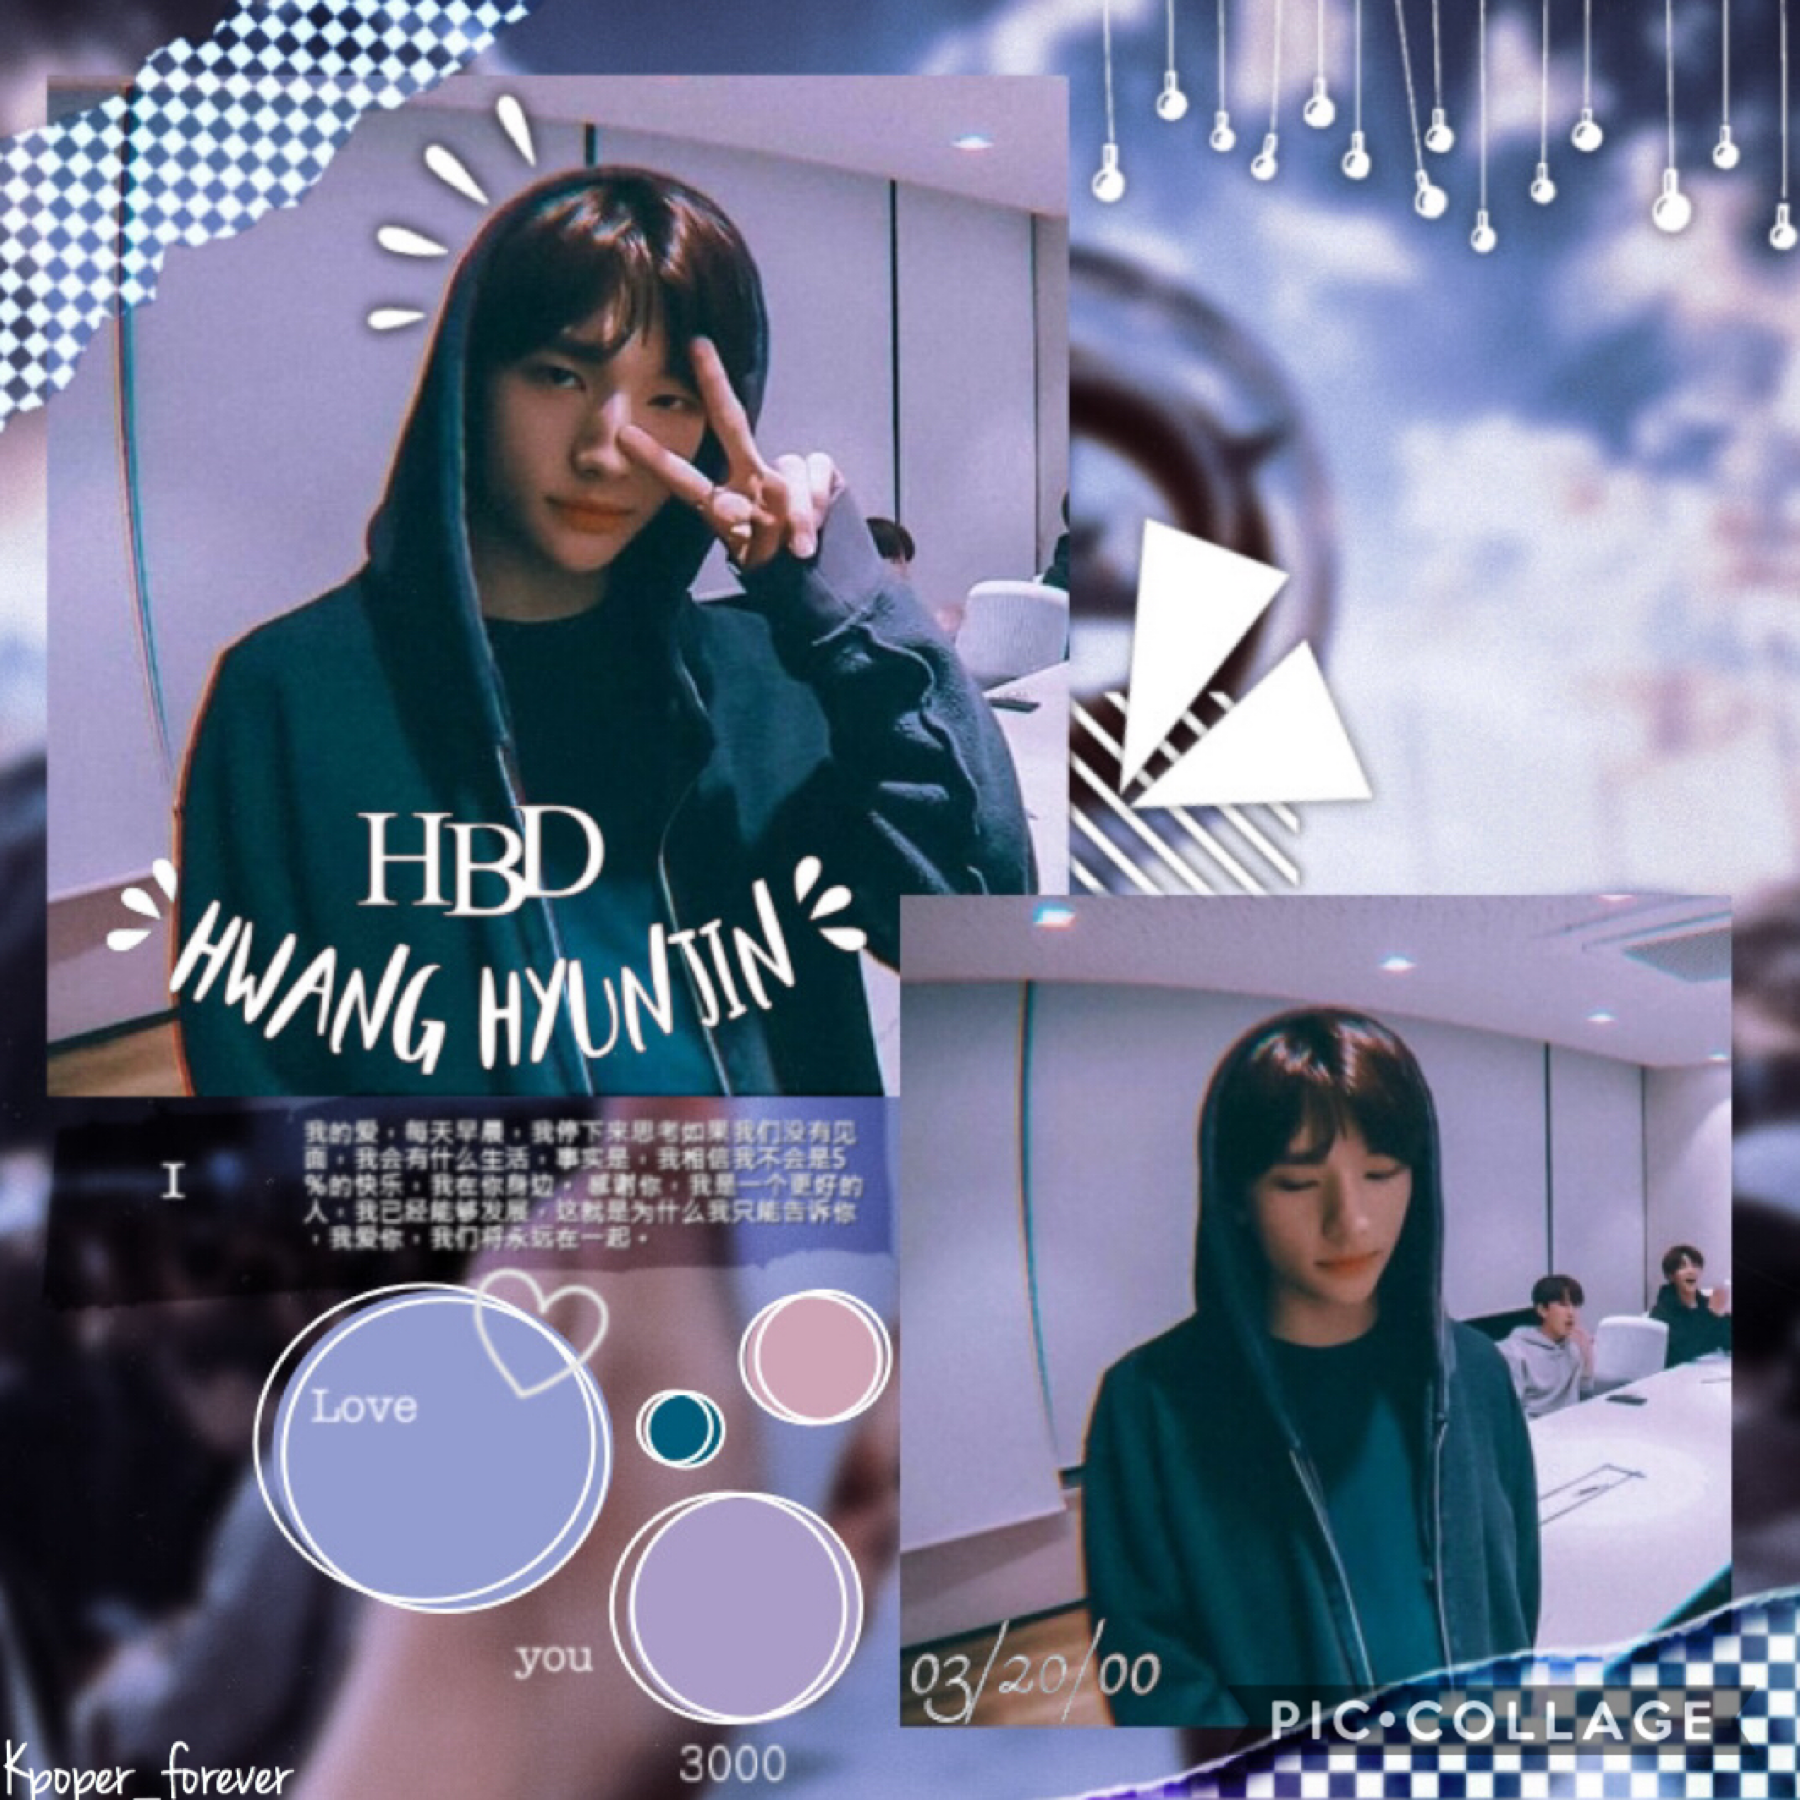 ✧ ᴛᴀᴘ ♡ 𝐇𝐰𝐚𝐧𝐠 𝐇𝐲𝐮𝐧𝐣𝐢𝐧 𝟎𝟑/𝟐𝟎/𝟎𝟎  Well I made this edit for his bday but like I just return to pc i was going to post it tomorrow but... nOt aNyMoRe :))  Hope you like it 🥺💞